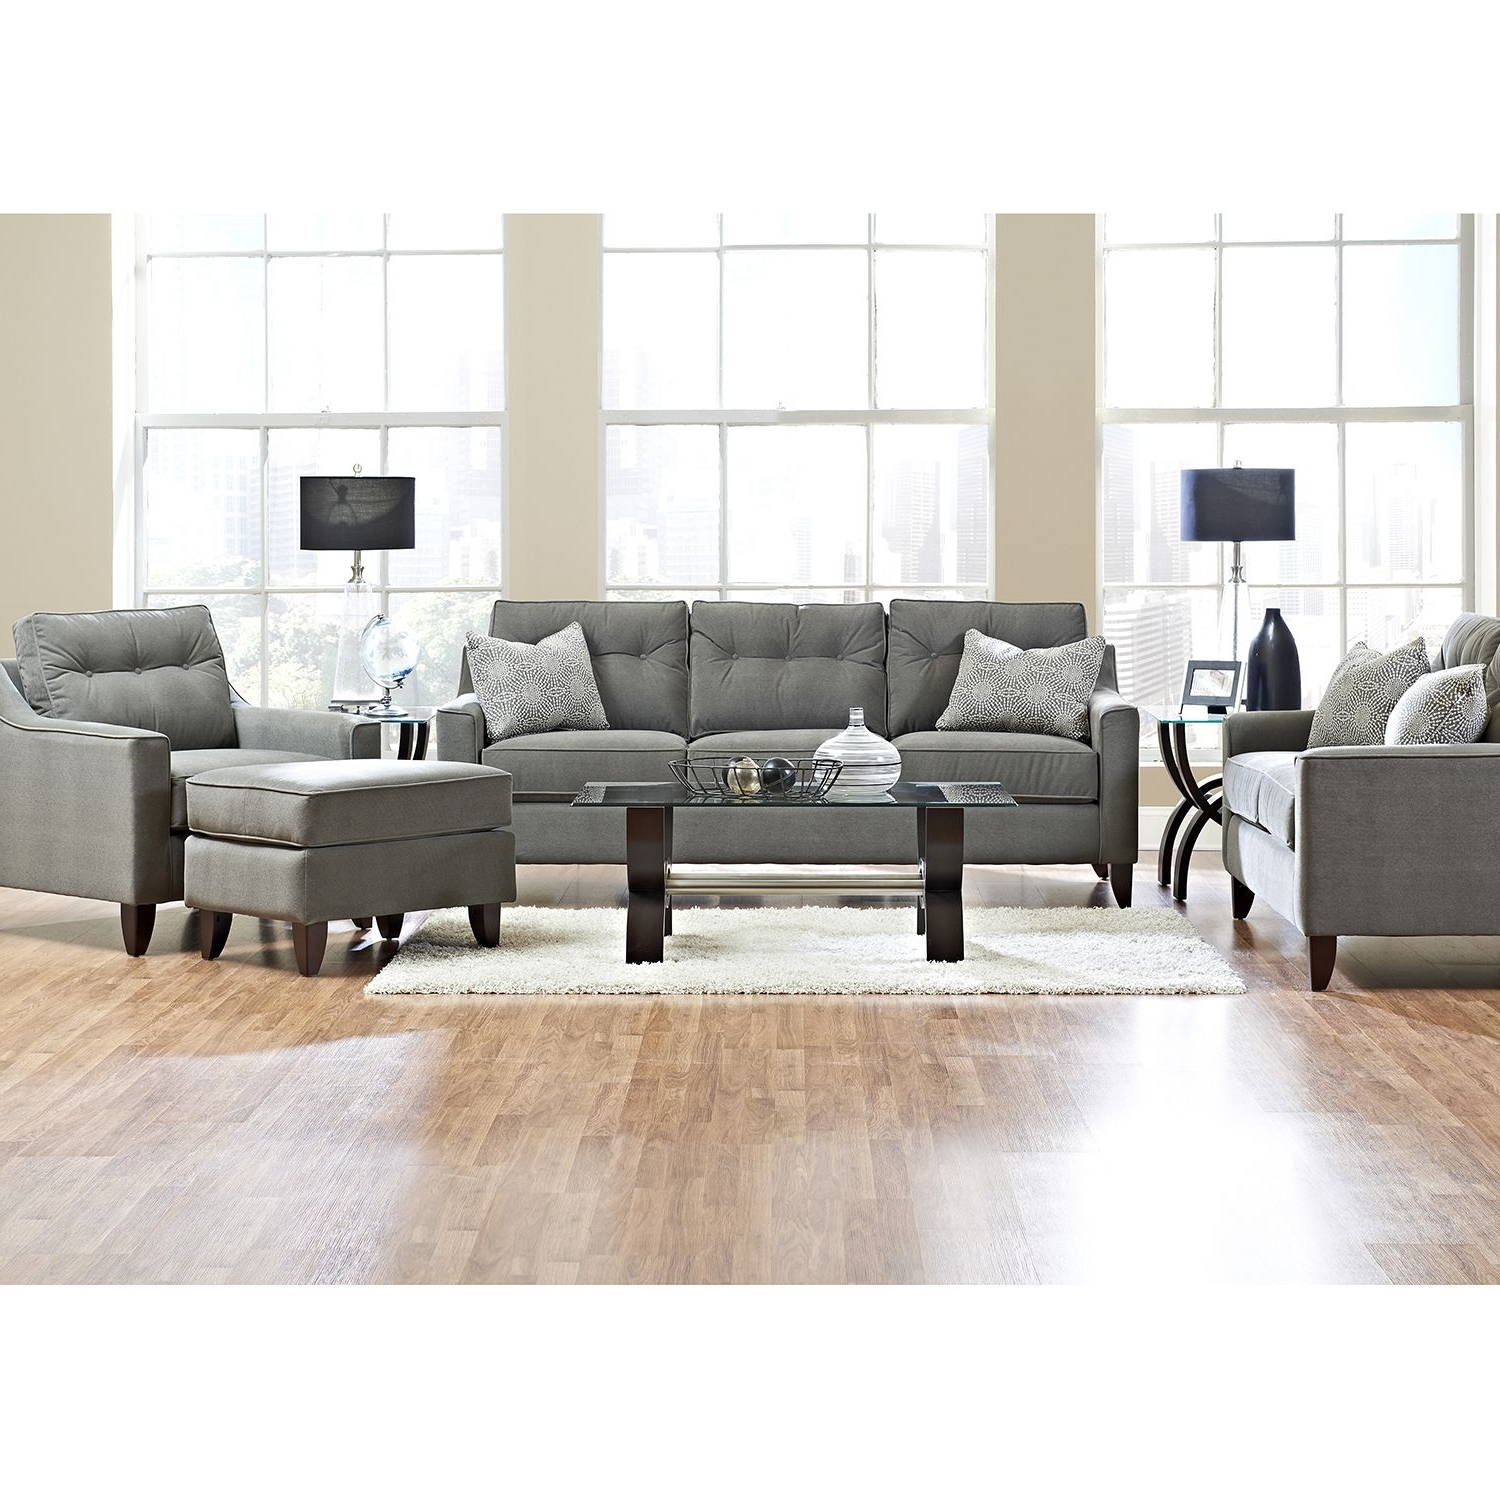 Best And Newest Prestige Aaron Sofa, Loveseat, Chair And Ottoman Collection For Sectional Sofas At Aarons (View 3 of 15)